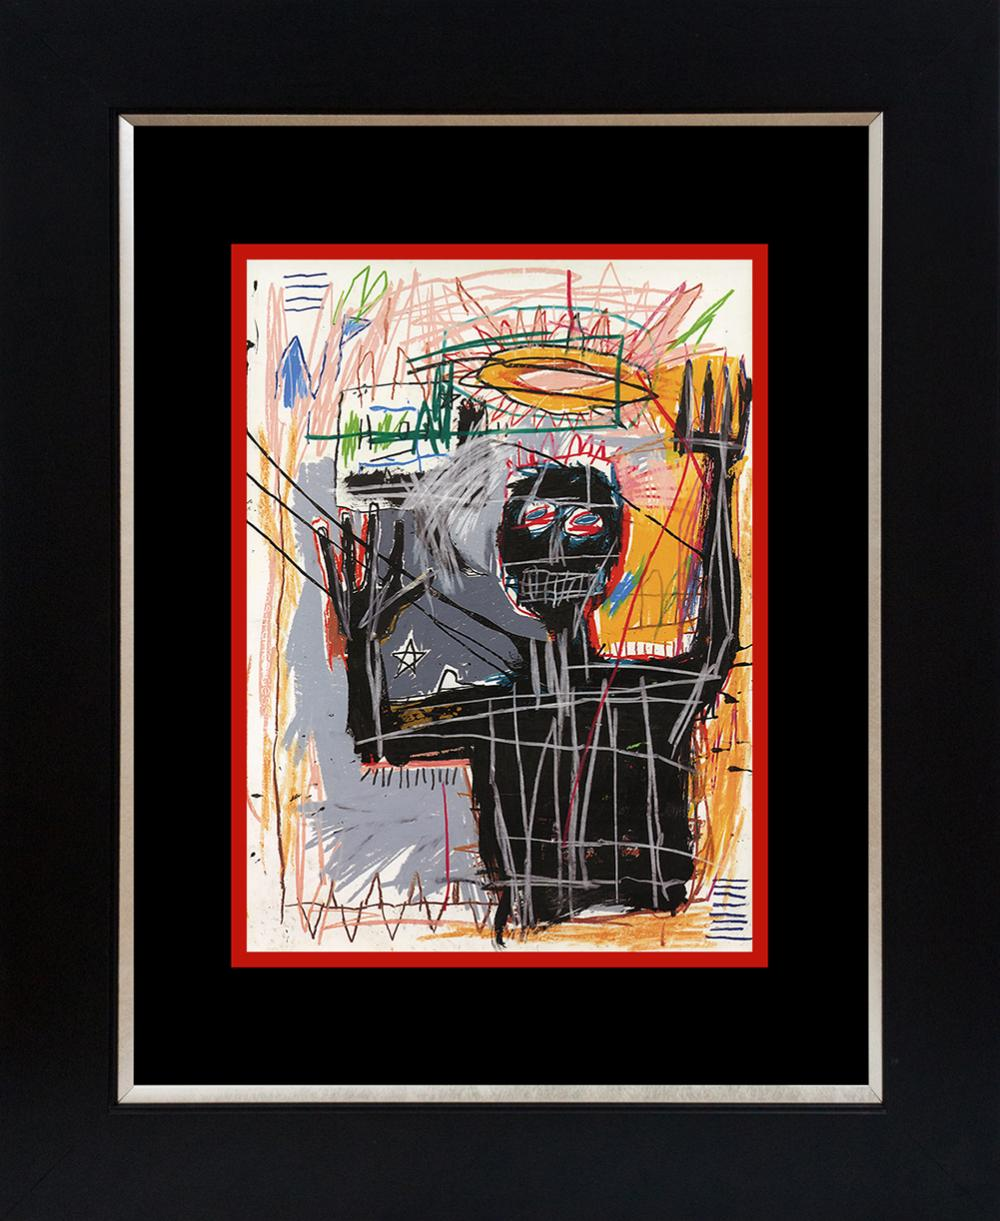 Jean Michel Basquiat Lithograph from 1991